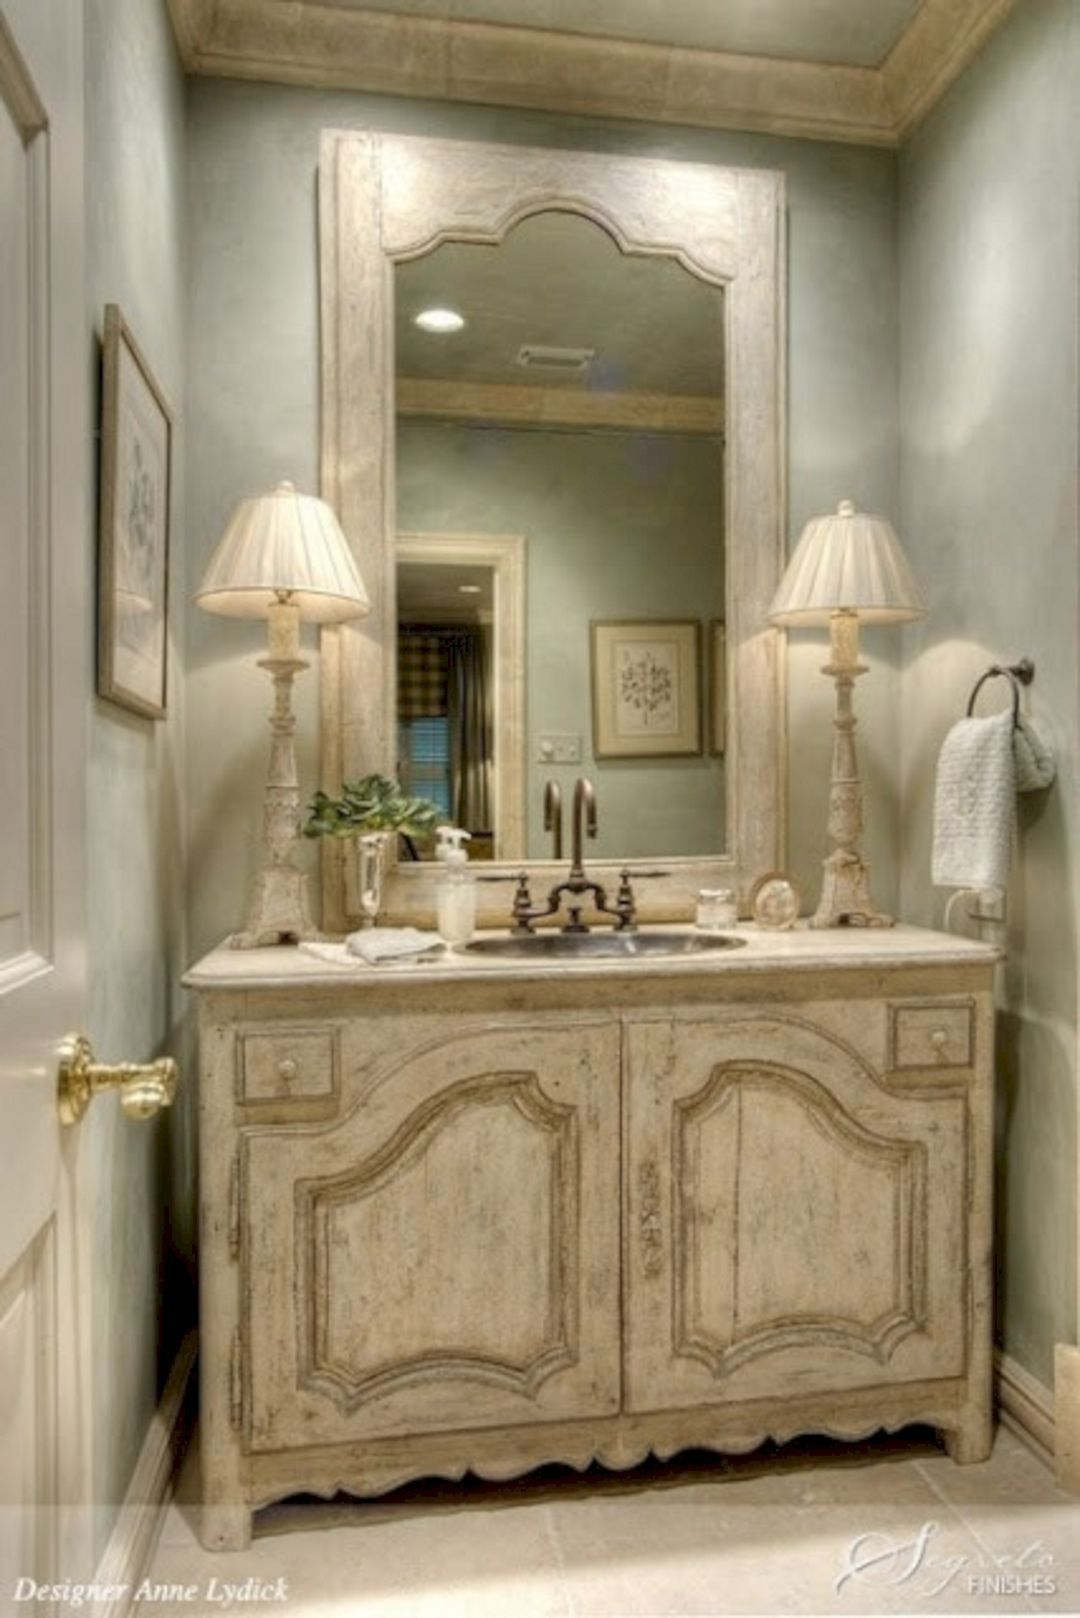 Best Ideas French Country Style Home Designs 1 (Best Ideas French Country Style Home Designs 1) design ideas and photos -   18 french decor bathroom ideas